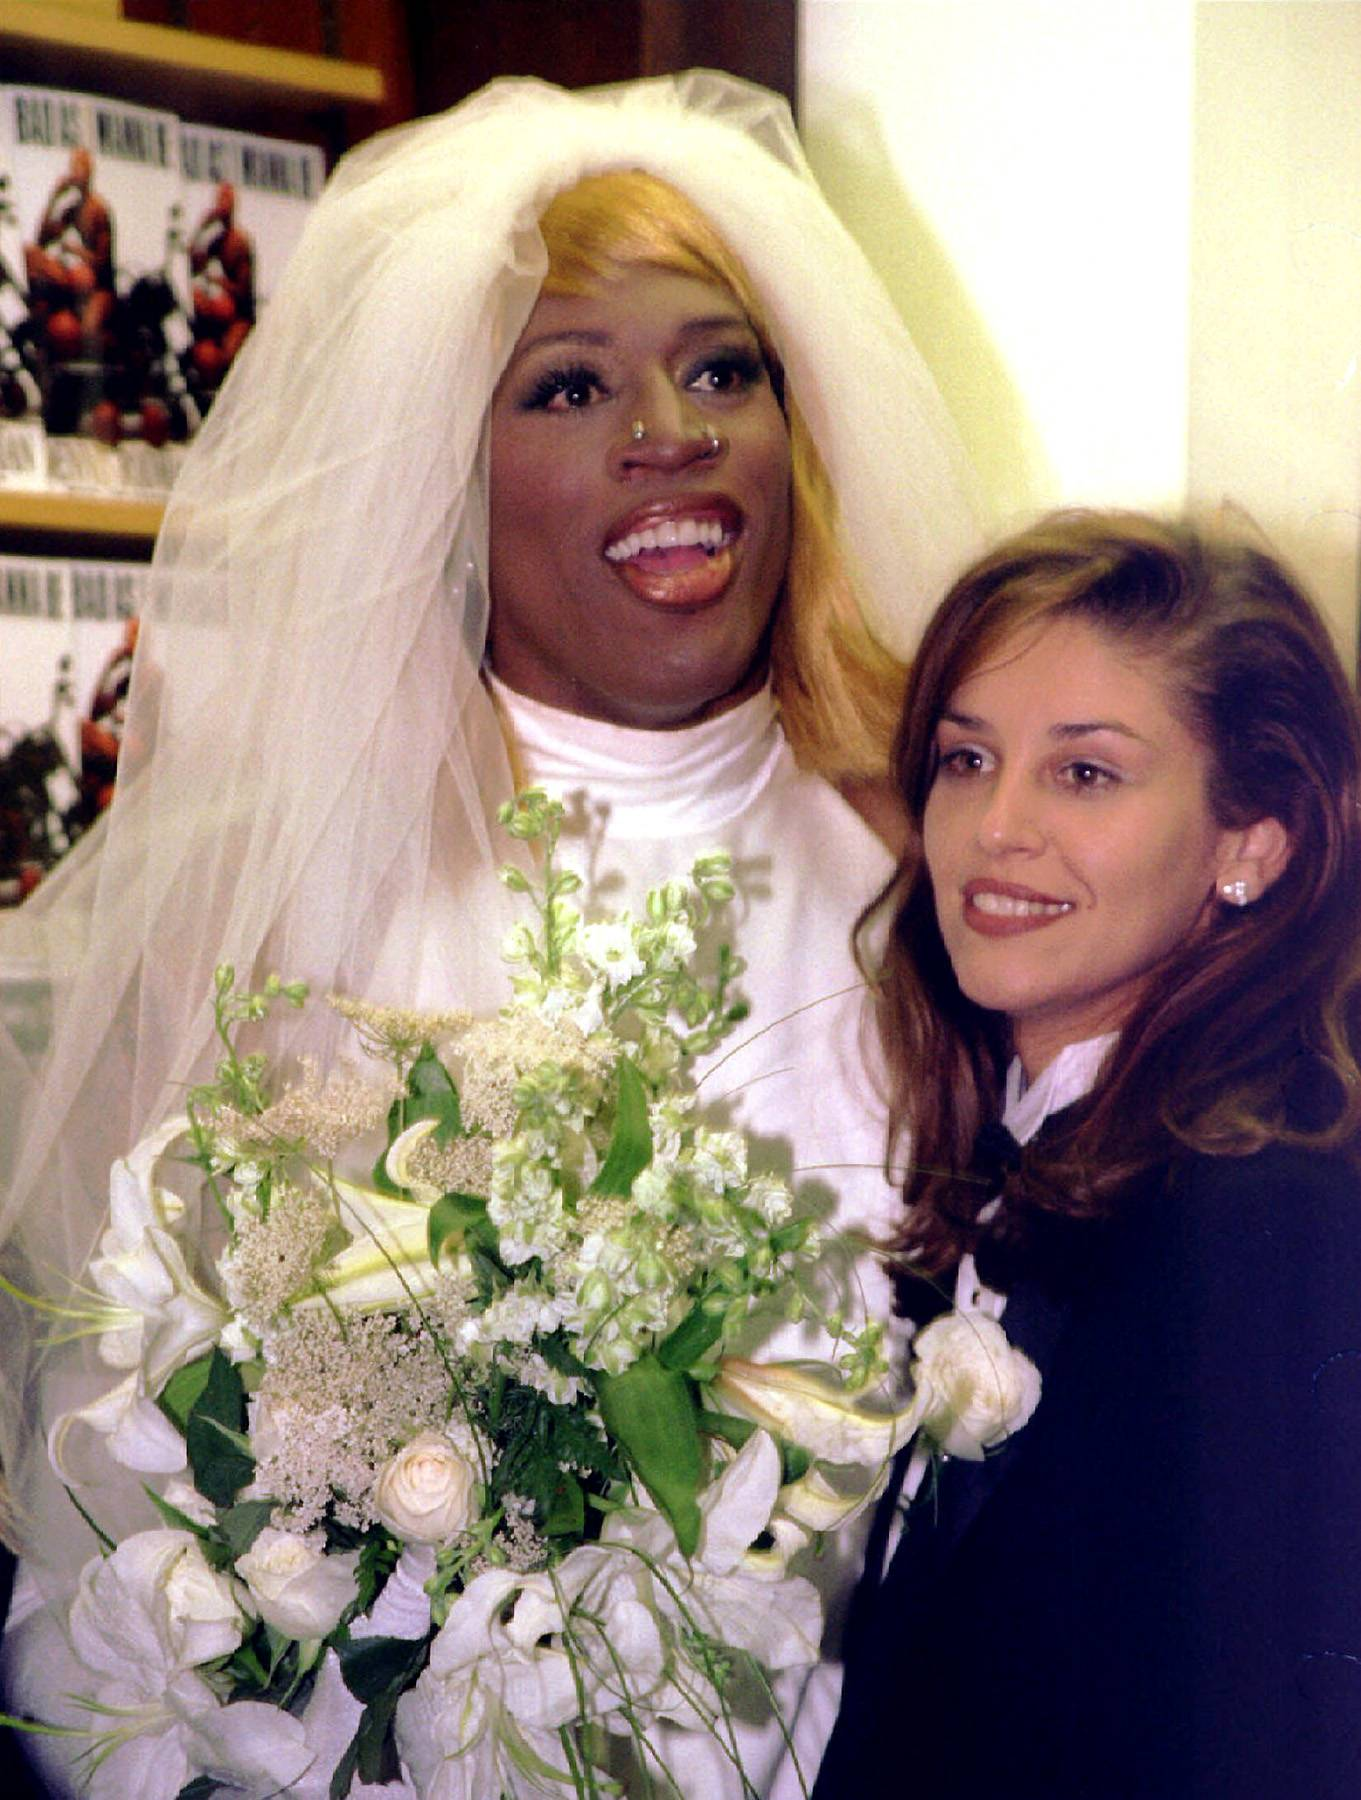 Fashion Foward - Rodman's fashion choices have always been a little out there (facial piercings and hair colors spanning the rainbow included), but nothing quite topped the wedding dress and blonde wig he wore during the press tour for his 1996 autobiography,Bad As I Wanna Be.(Photo: REUTERS/Peter Morgan/Files /Landov)